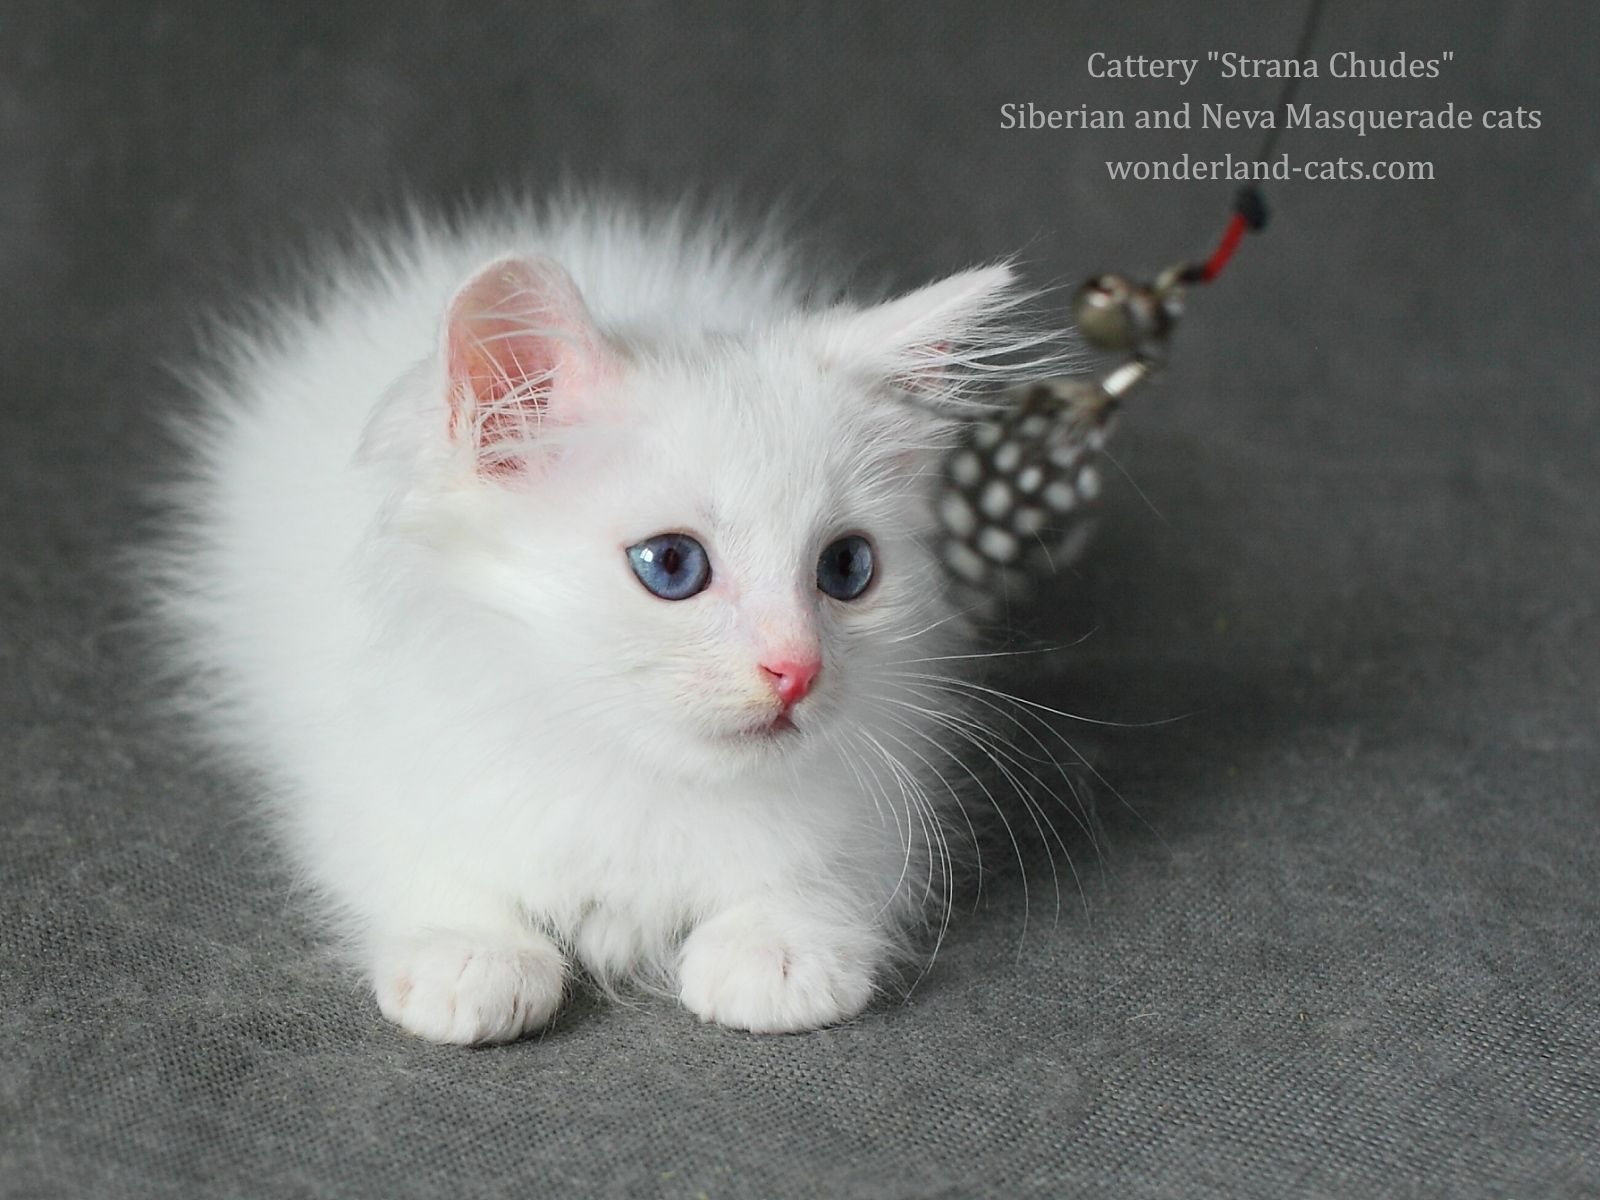 Russian Siberian Beautiful Cute White Kitten Blue Eyes In Cattery Strana Chudes You Can Choose Beautifu Siberian Kittens For Sale Cattery Siberian Kittens